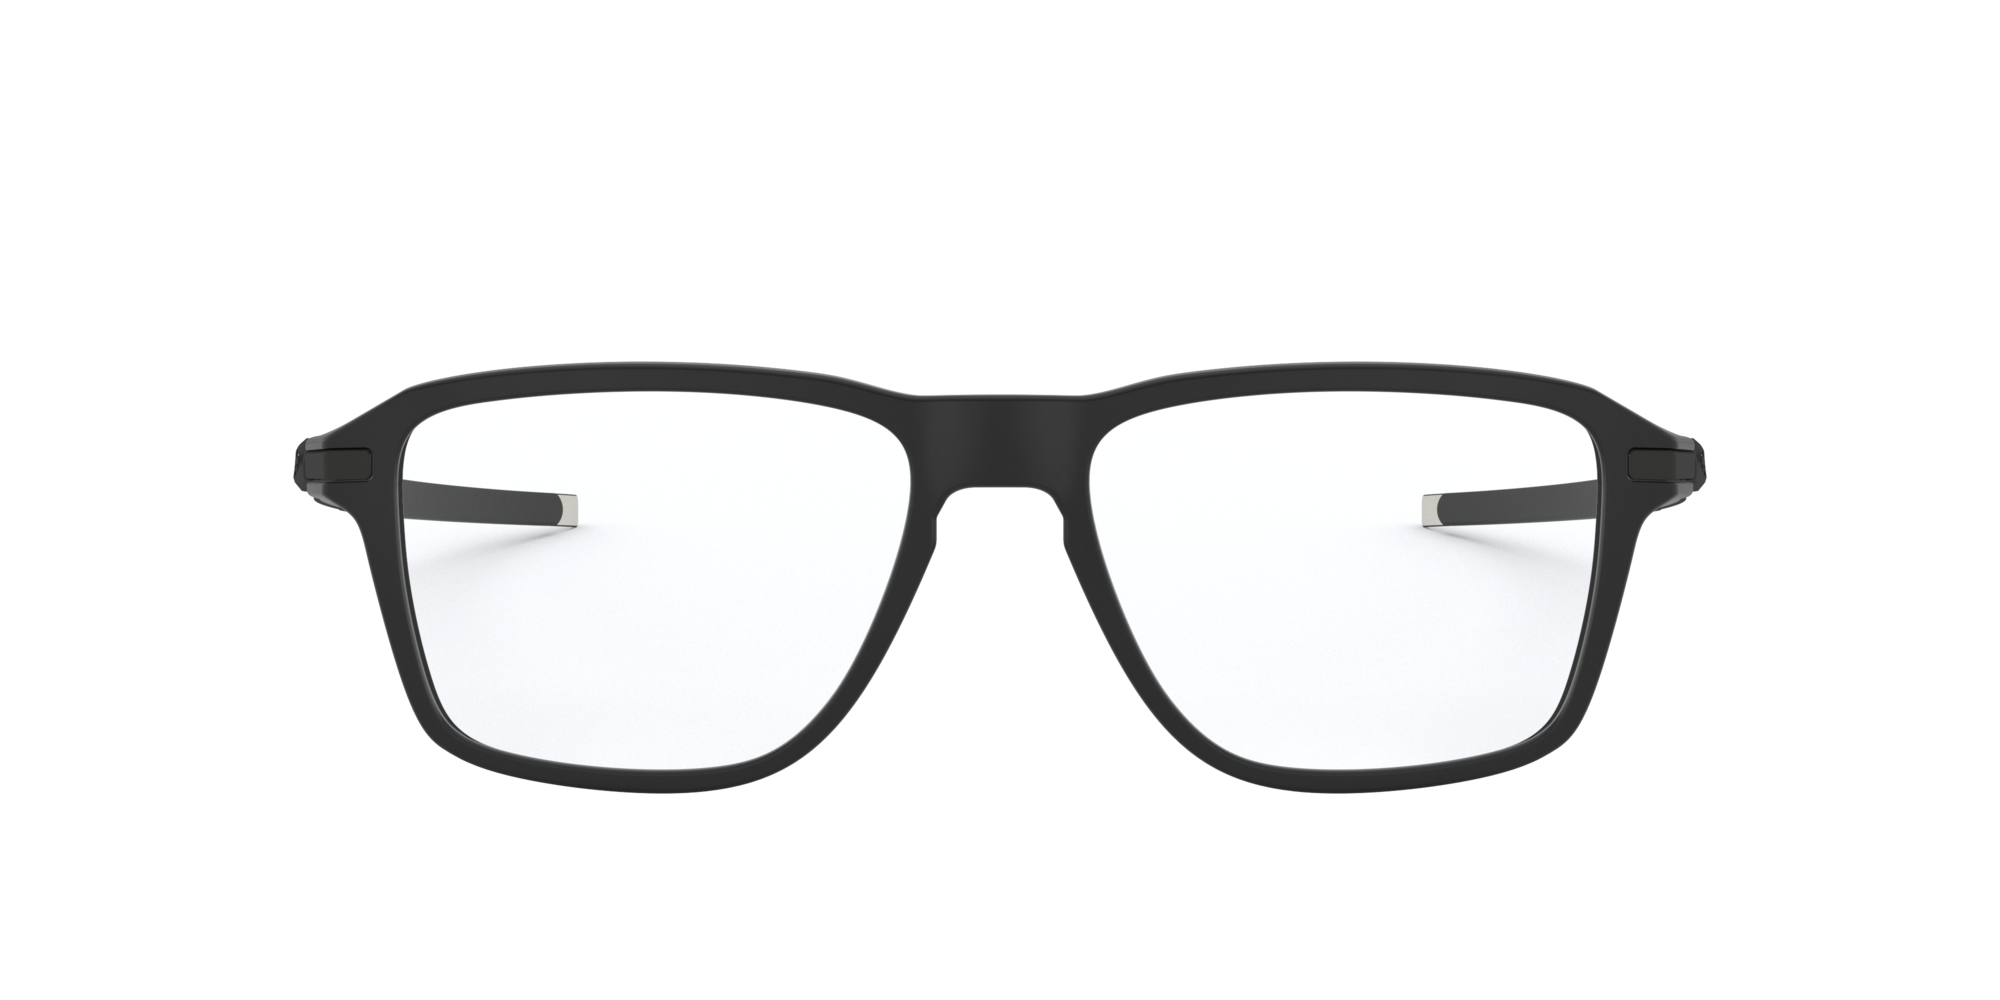 Image for OX8166 WHEEL HOUSE from LensCrafters | Glasses, Prescription Glasses Online, Eyewear